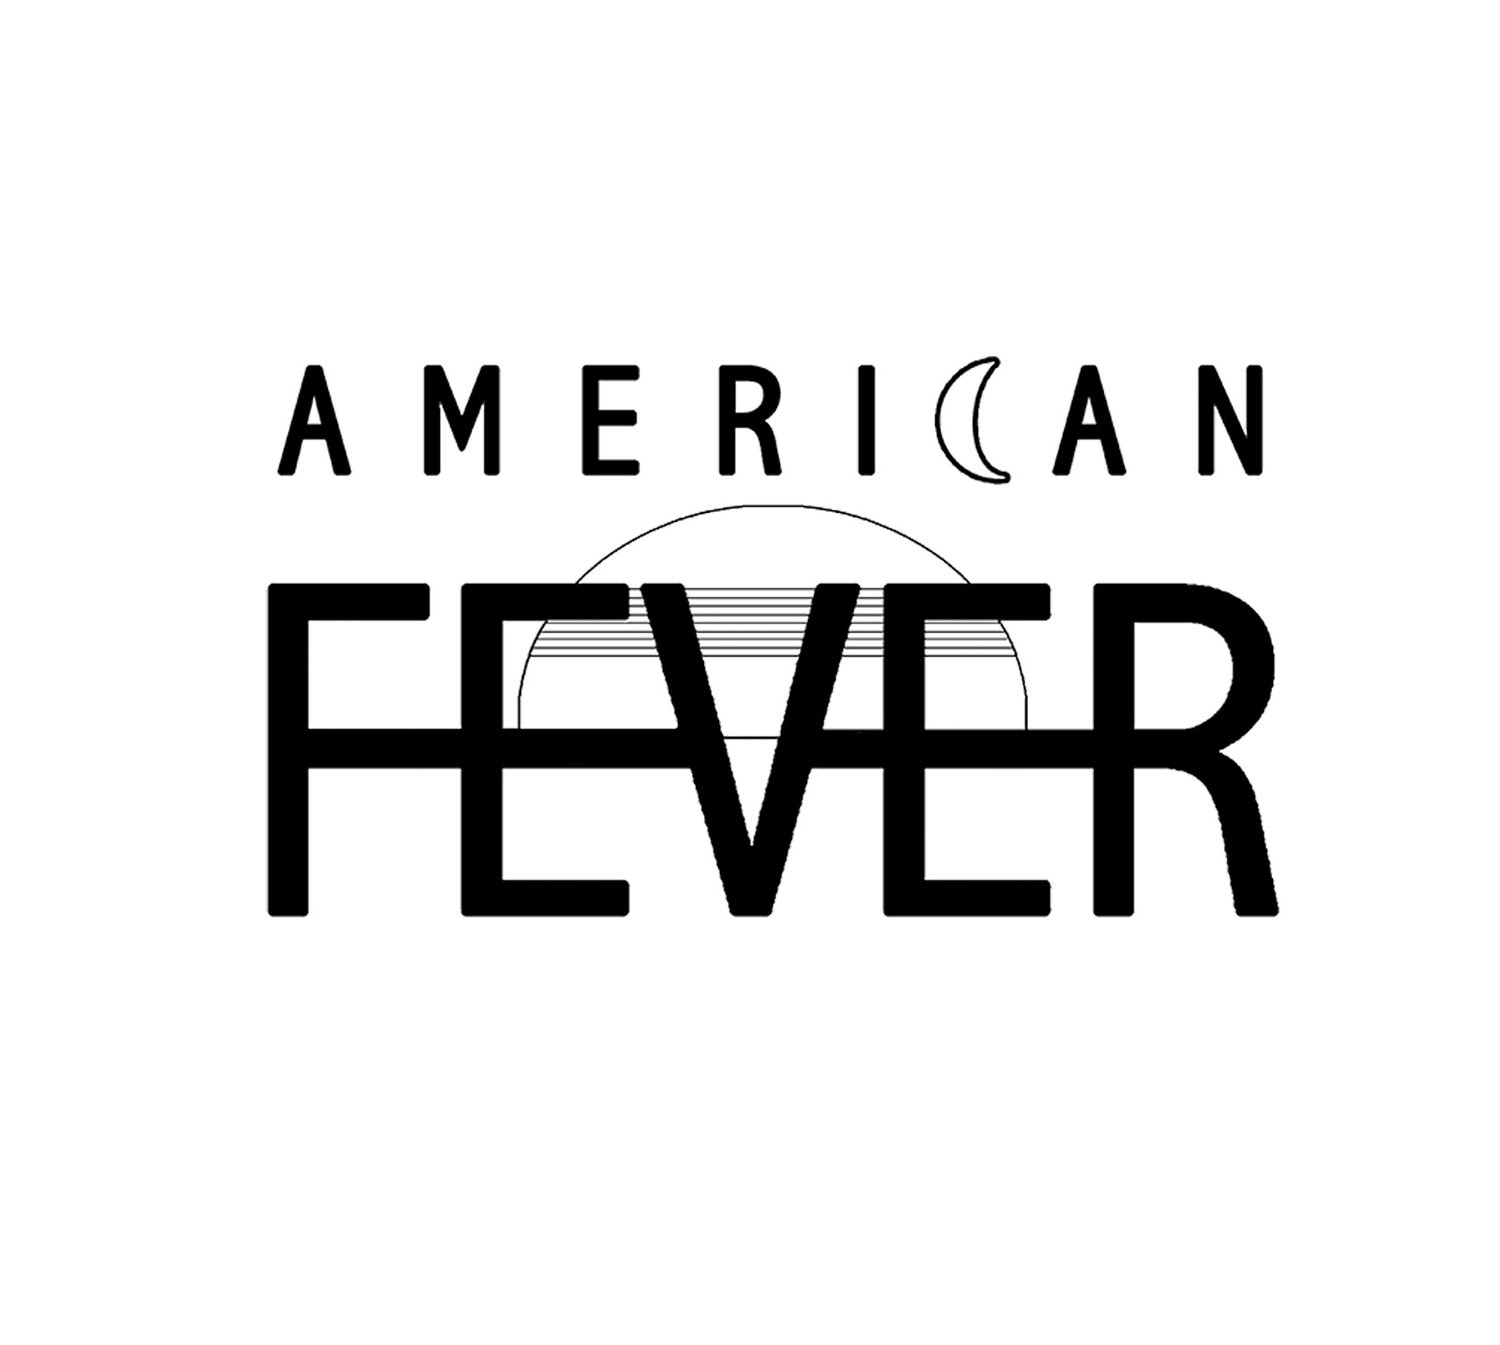 AMERICAN FEVER